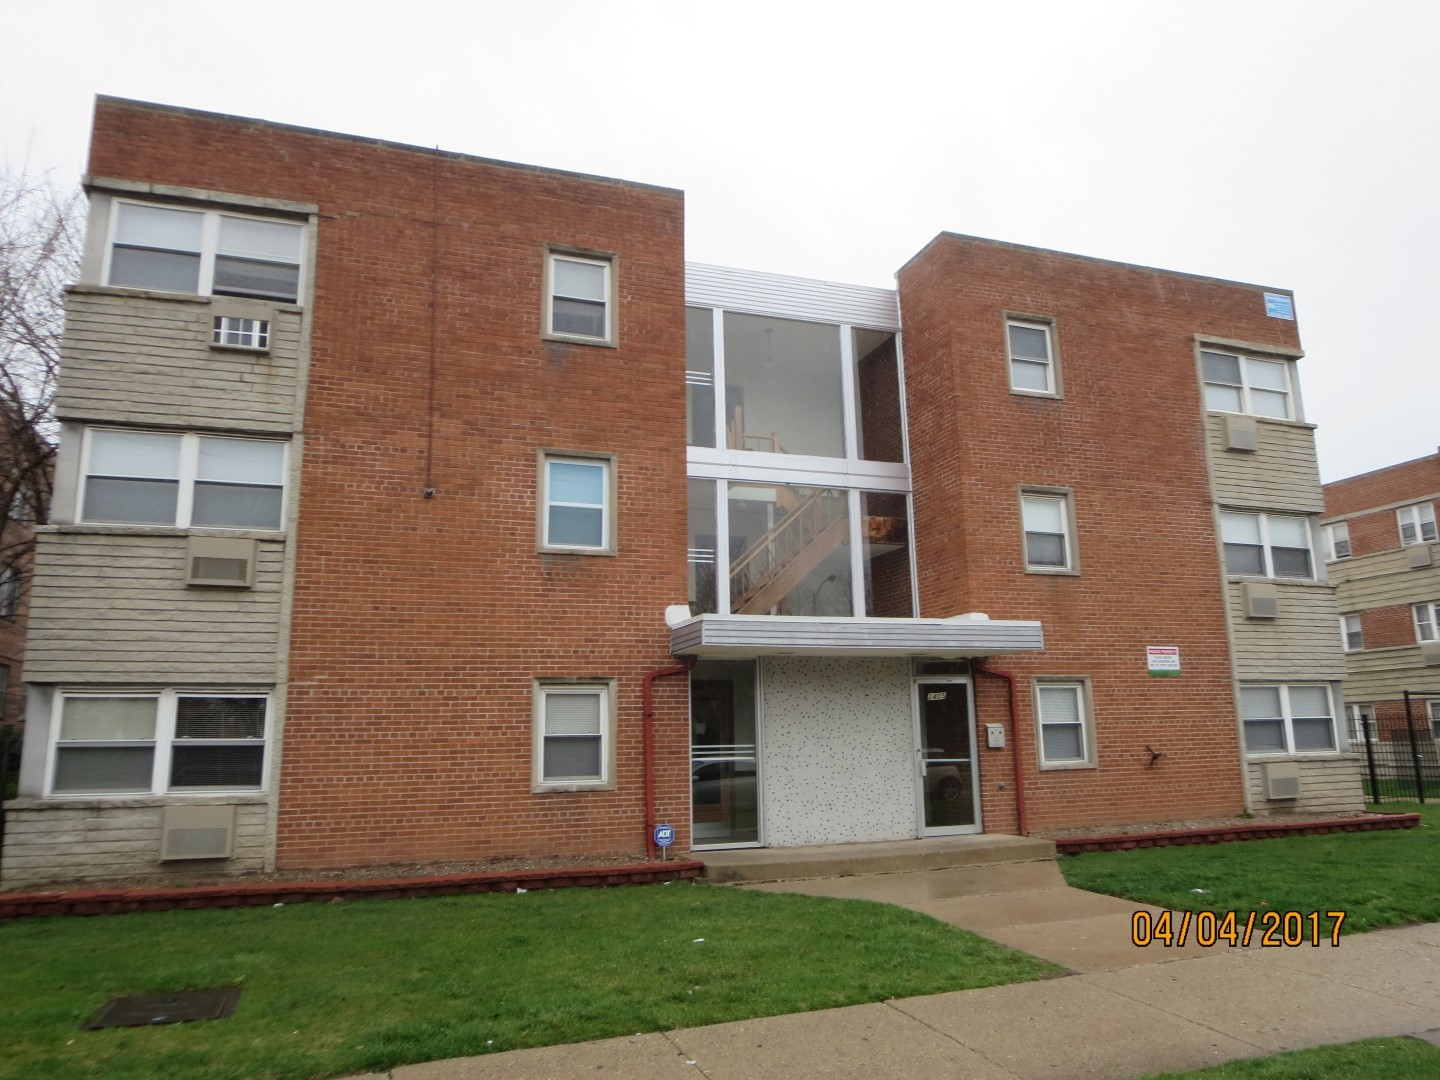 2ND FLOOR END UNIT FEATURING 1 BEDROOM & 1 BATHROOM, PLUS AND AN EAT-IN KITCHEN. 1 YEAR LEASE PLEASE, PARKING IS AN ADDITIONAL $25. GREAT LOCATION, PROFESSIONAL MANAGEMENT.  MOVE IN FEE AND FIRST MONTHS RENT.  GOOD CREDIT AND JOB HISTORY, NO SMOKING IN THE UNIT. READY FOR MOVE IN. PLEASE EMAIL APPLICATION TO AGENT